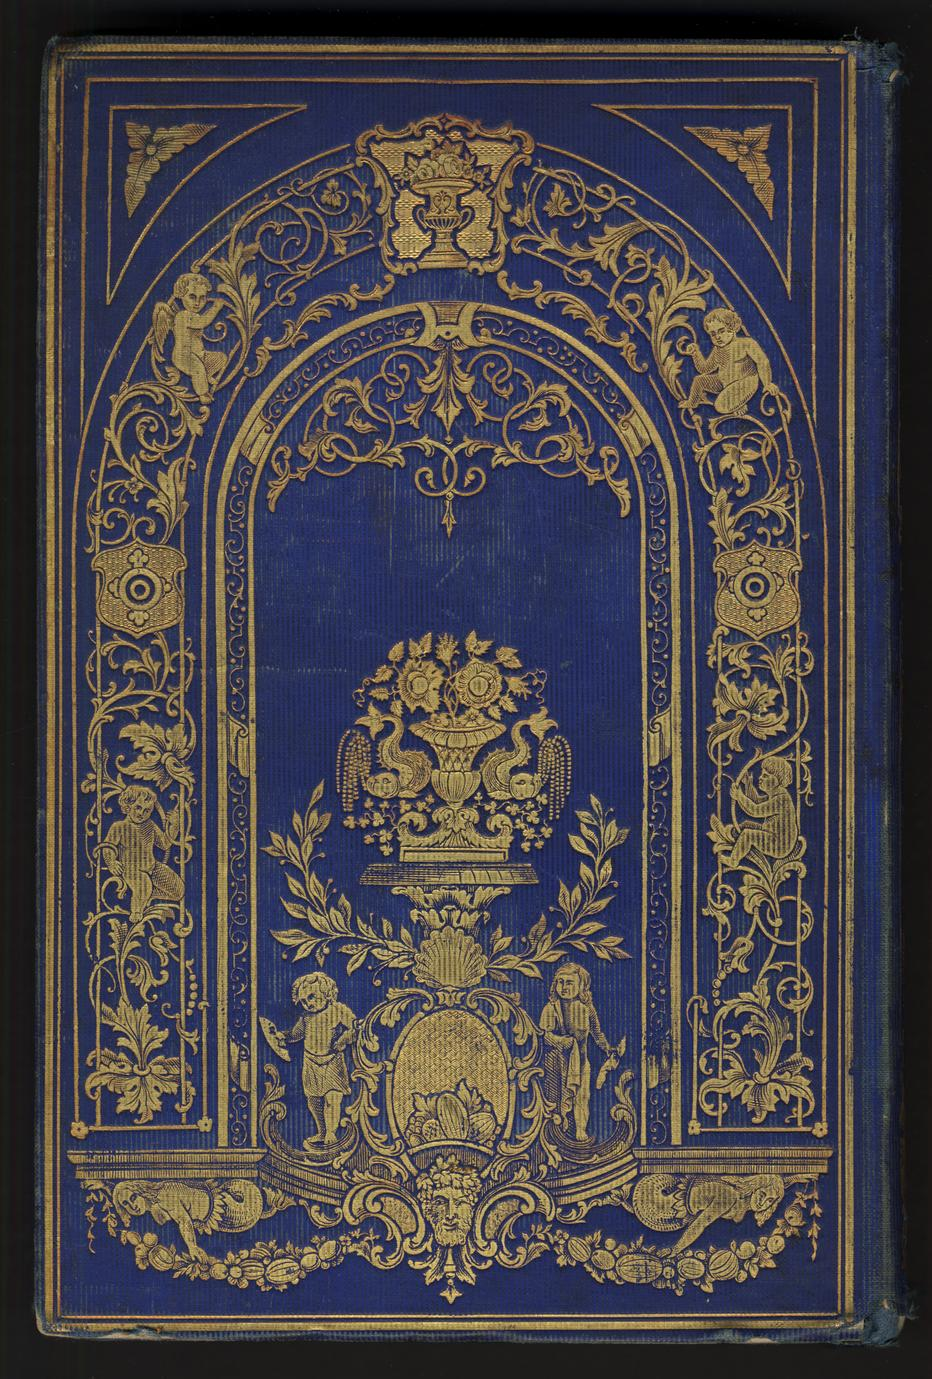 The book of pearls : a choice garland of prose, poetry, and art; containing twenty finely executed steel engravings (1 of 3)